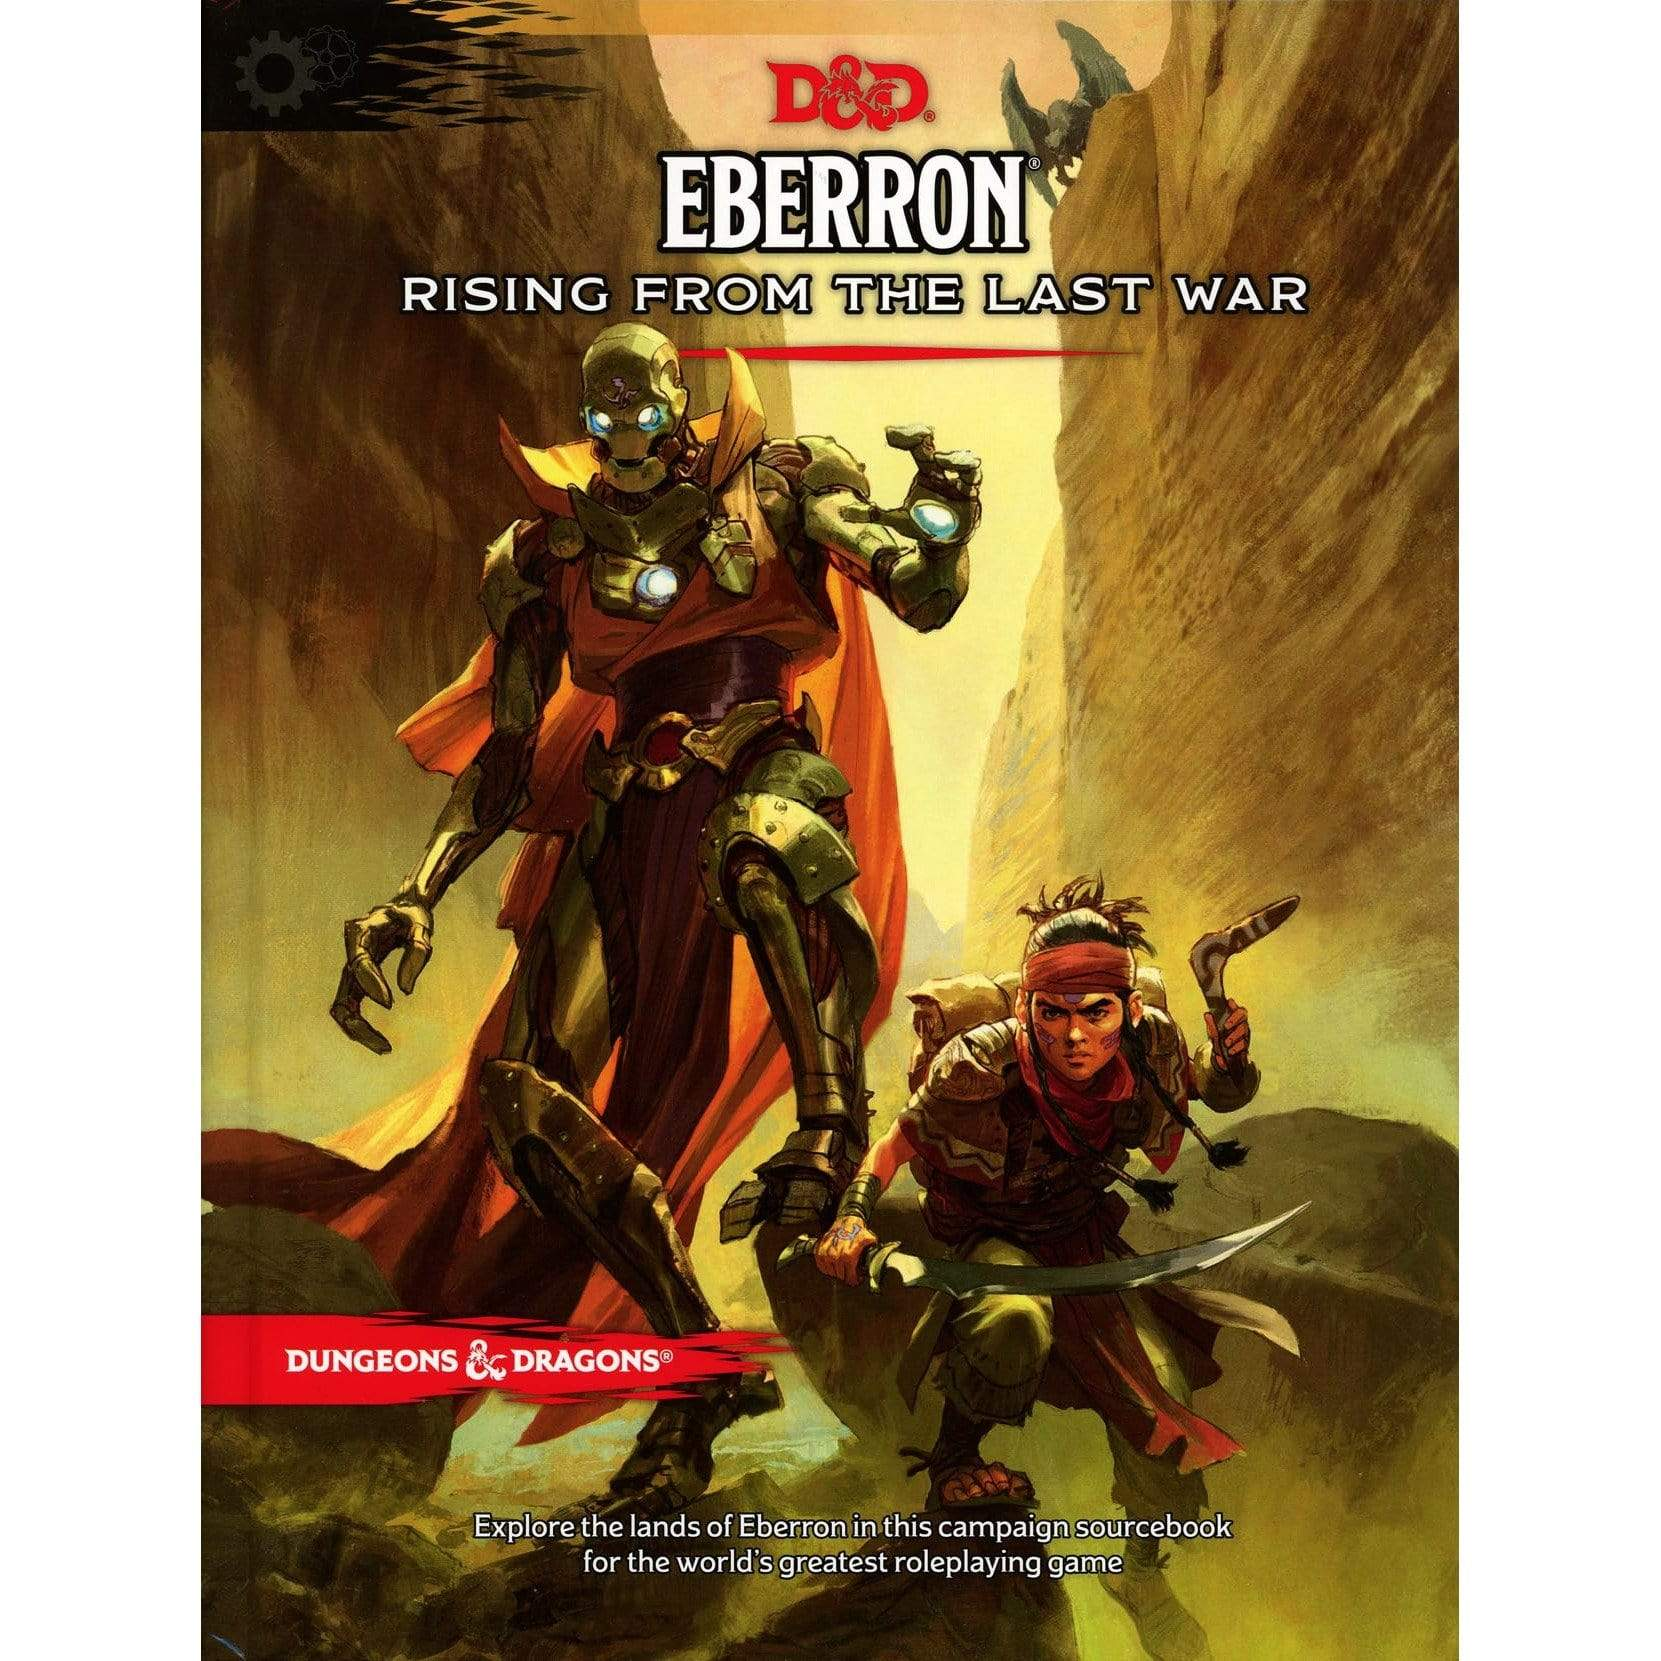 D&D: Eberron-Rising from the Last War Wizards of the Coast Board Games